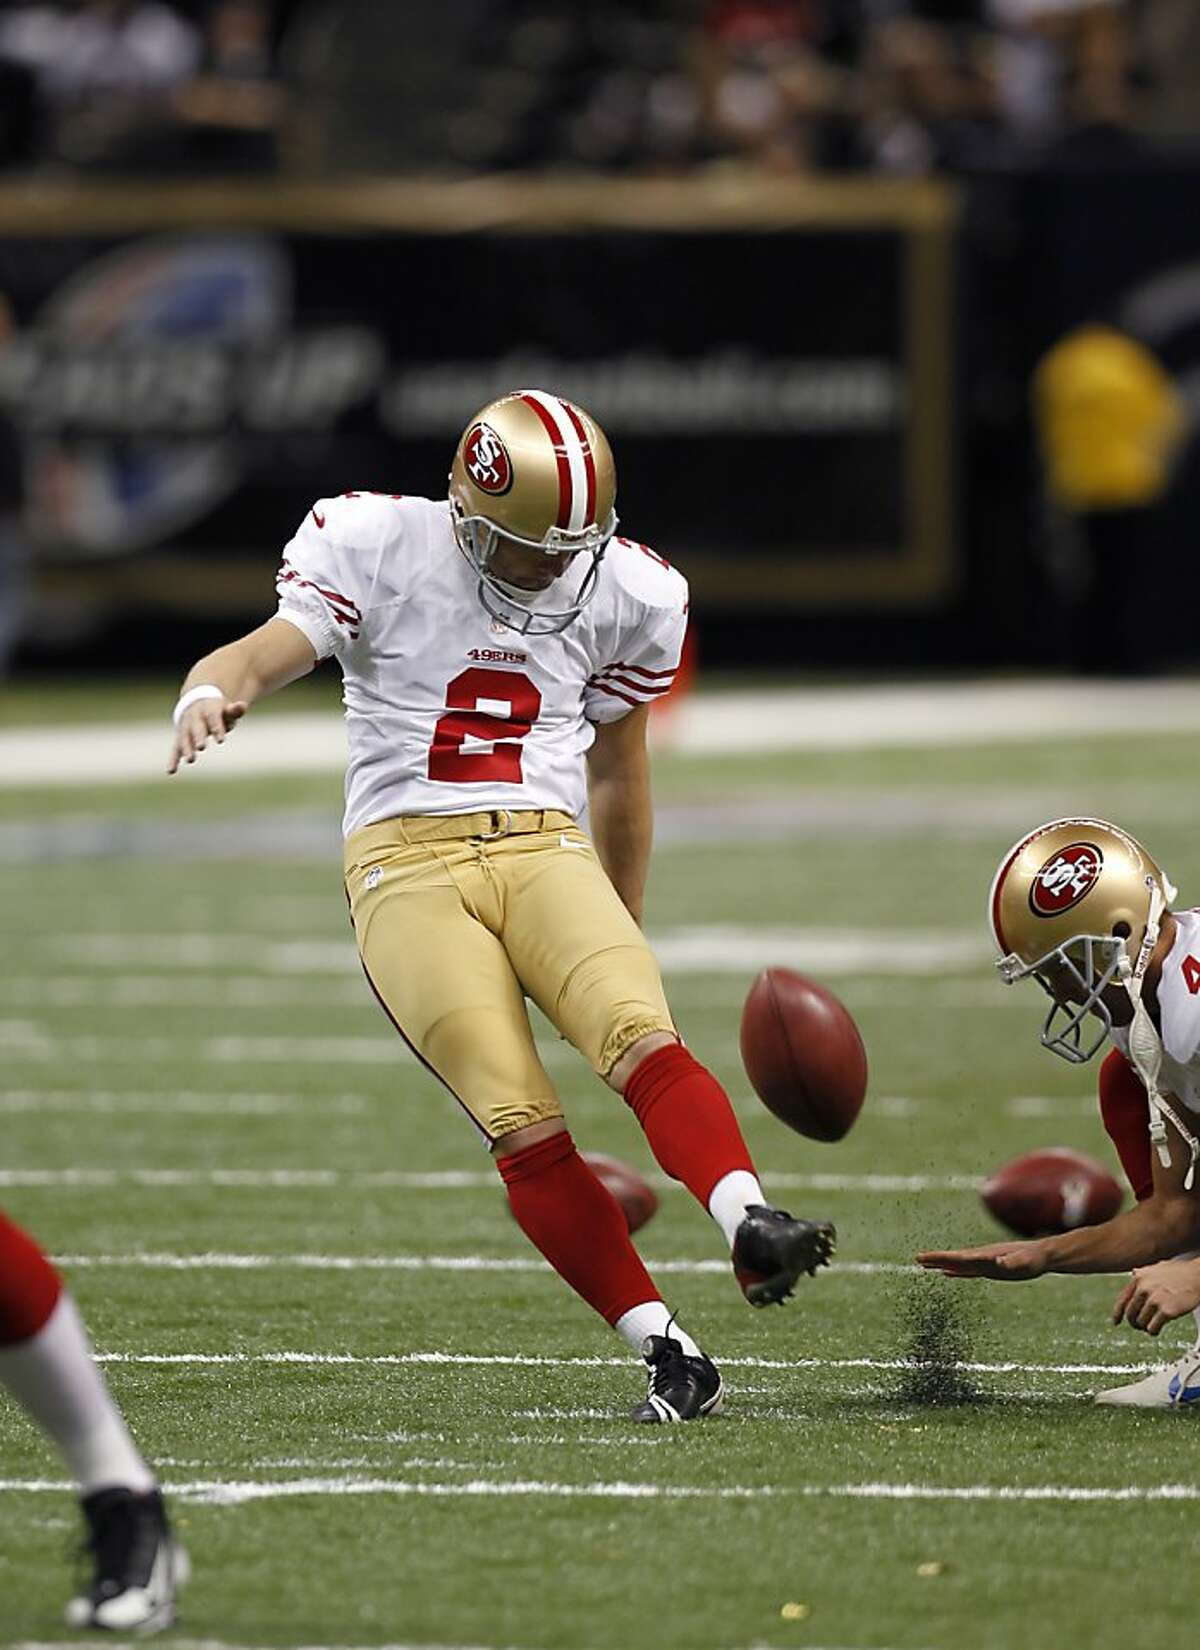 San Francisco 49ers kicker David Akers (2) warms up before an NFL football game against the New Orleans Saints at the Louisiana Superdome in New Orleans, Sunday, Nov. 25, 2012. (AP Photo/Gerald Herbert)